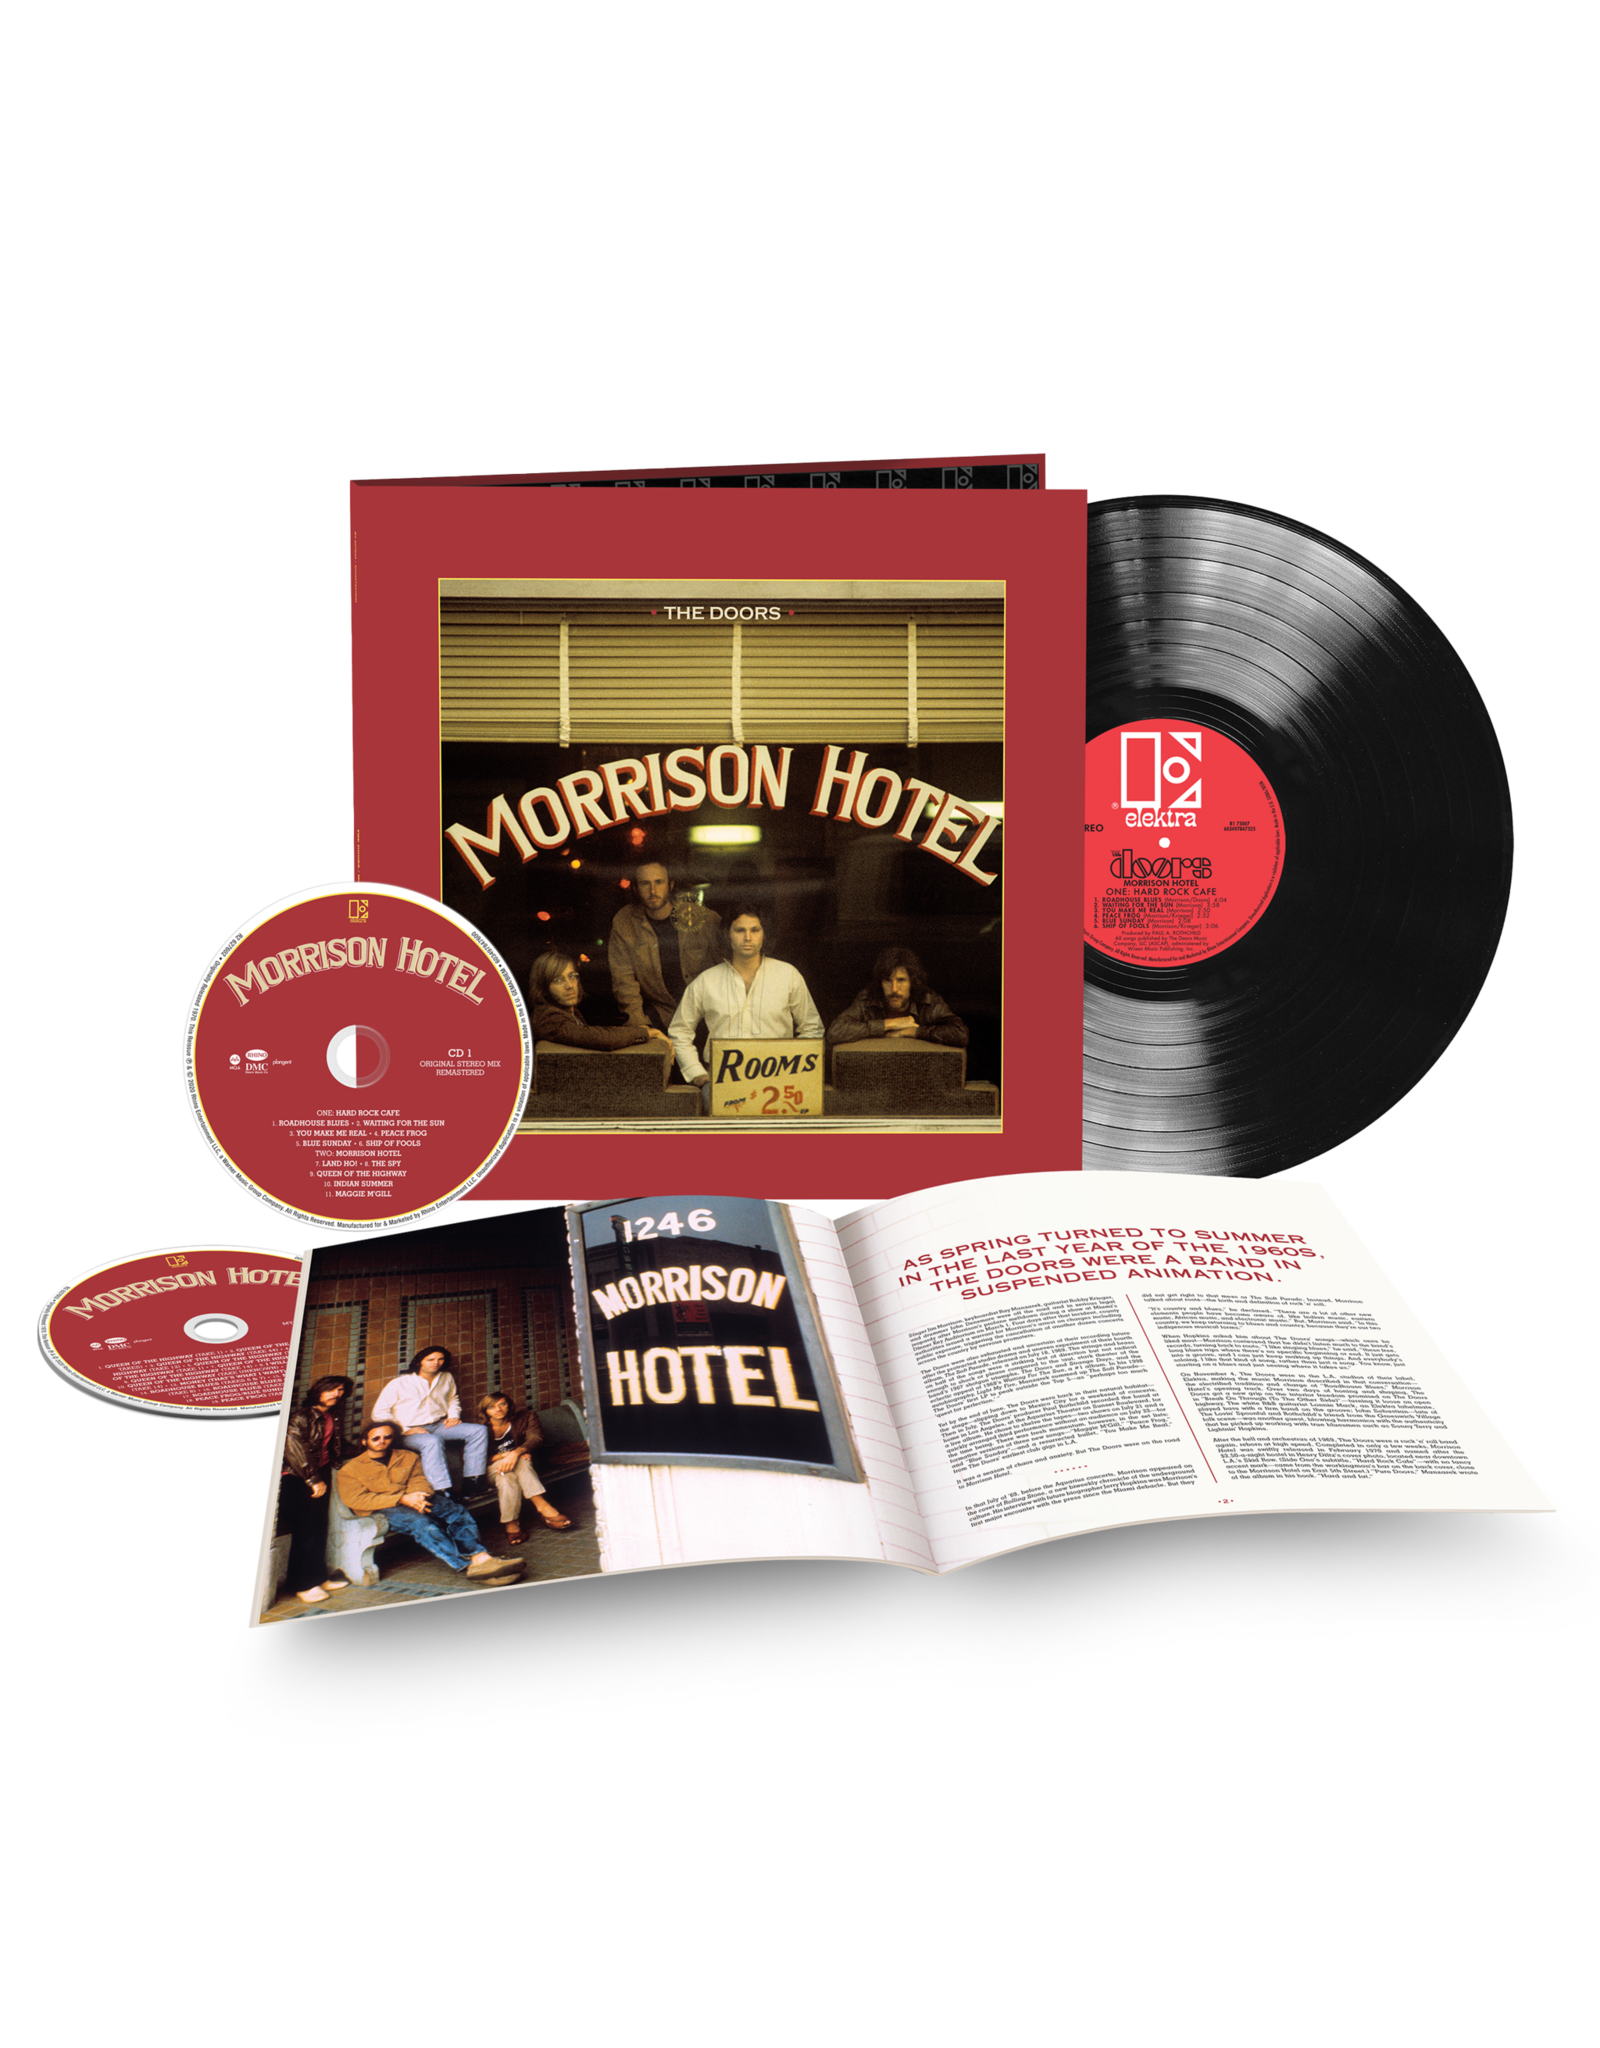 Doors, The - Morrison Hotel 50th Anniversary LP